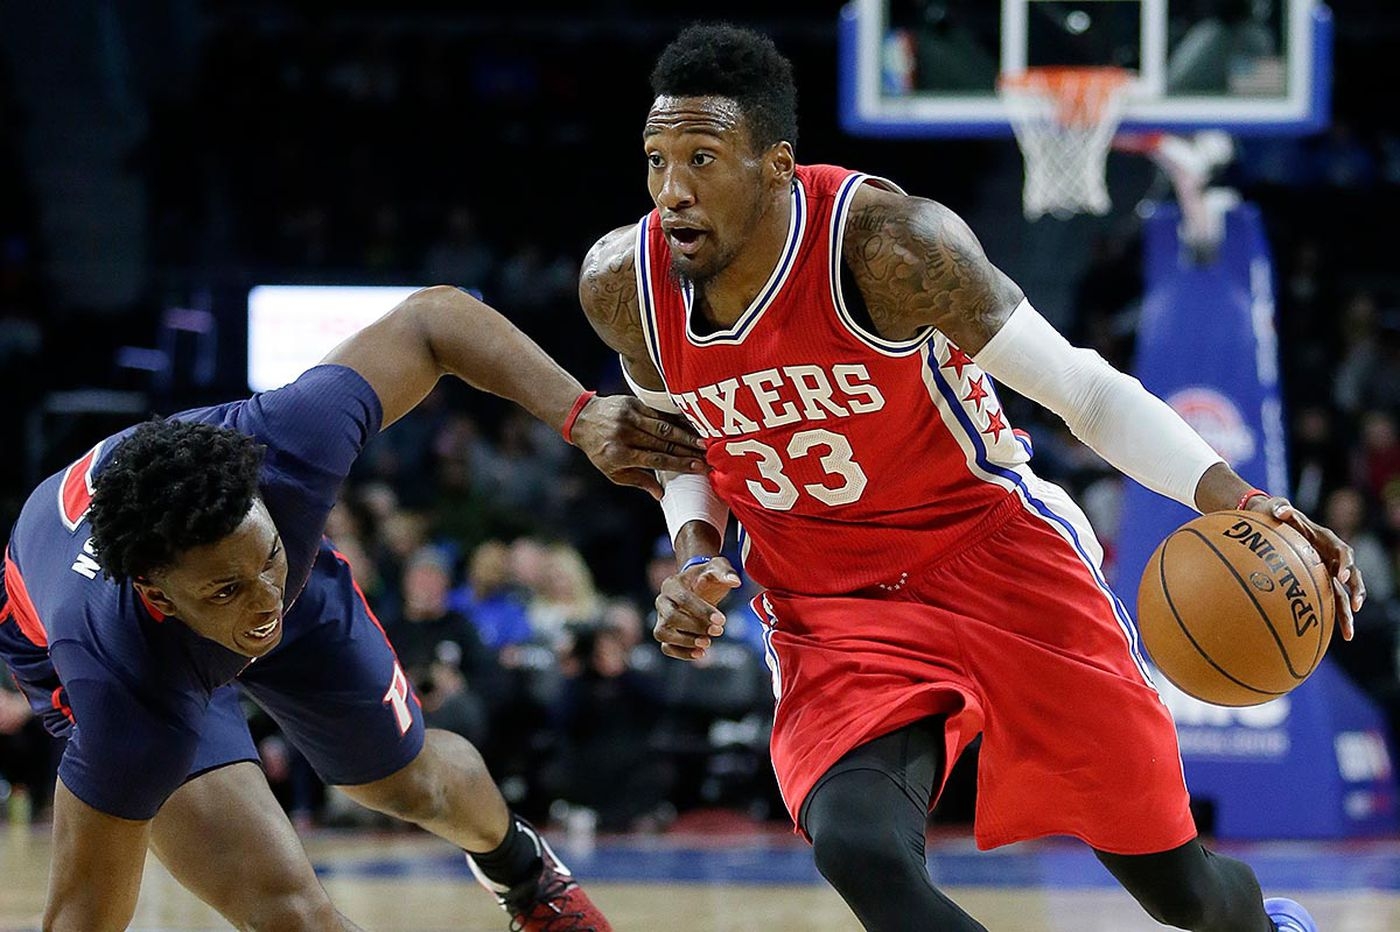 Sixers' Noel hurts ankle in win over Pistons